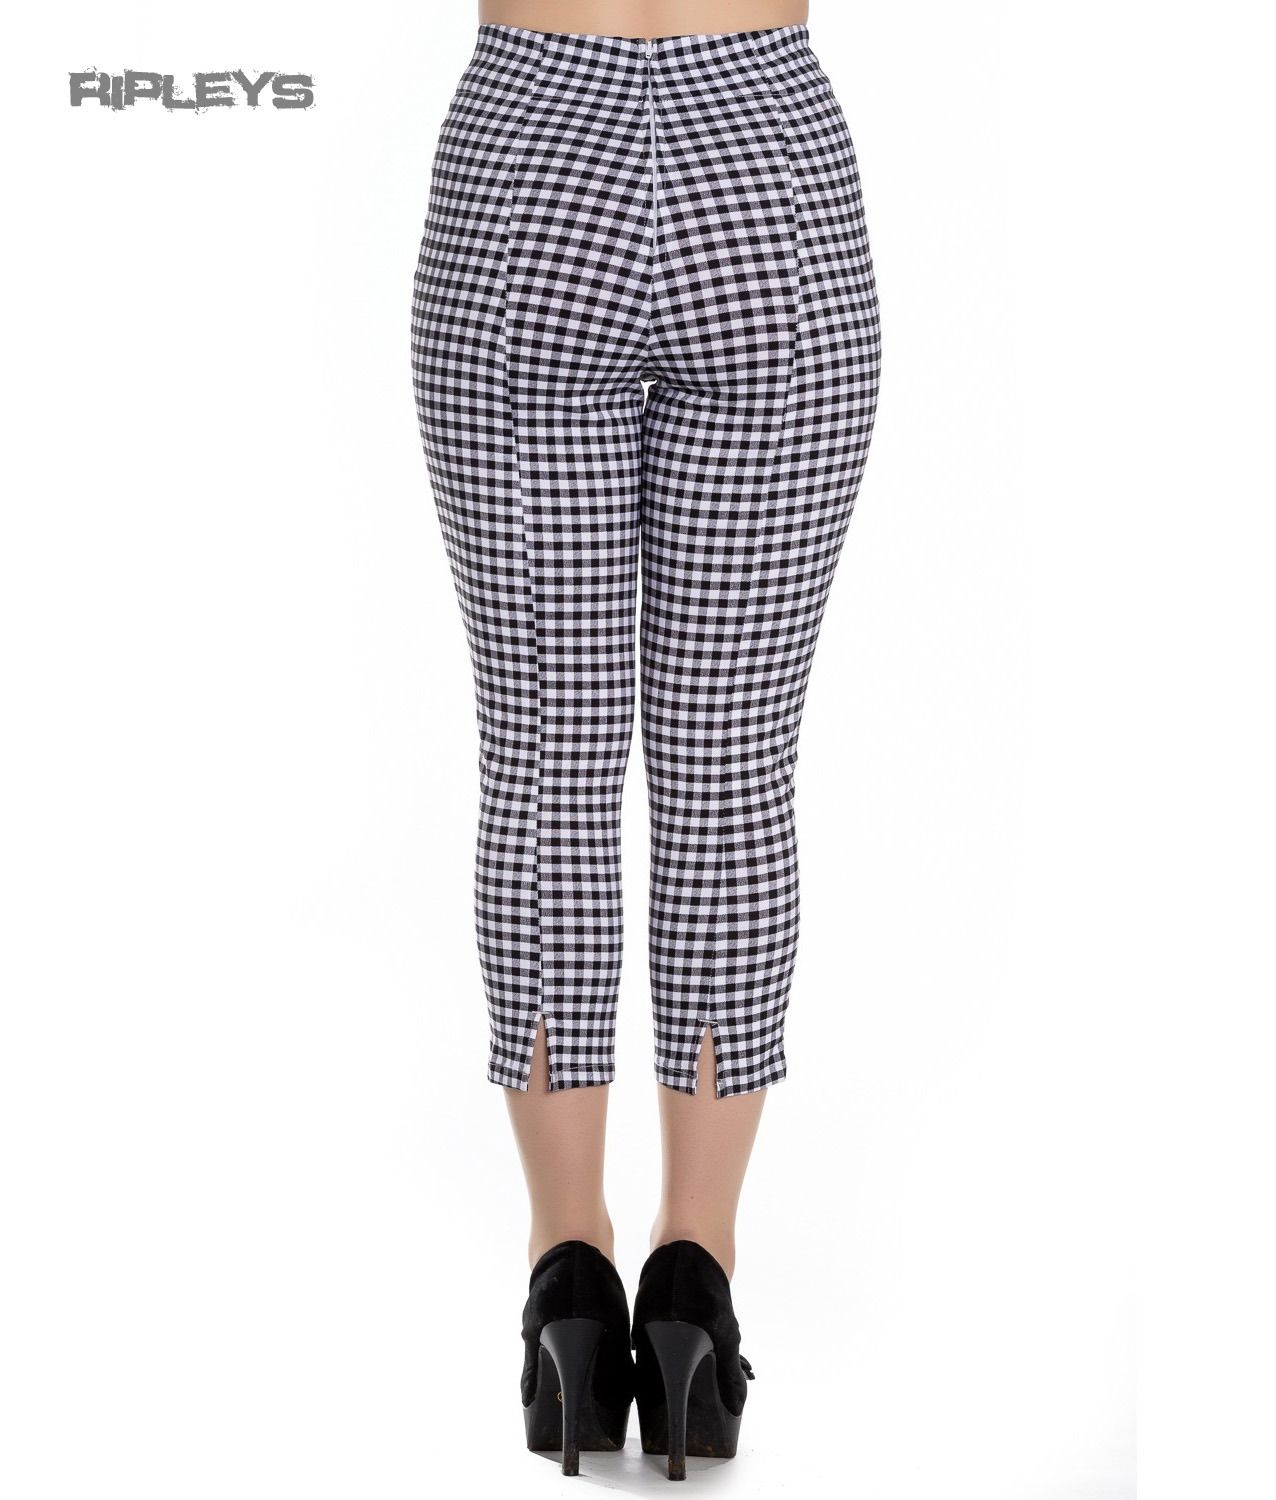 48bd486873ad Sentinel Hell Bunny Vintage 50s White/Black Gingham JUDY Capris Capri  Trousers All Sizes